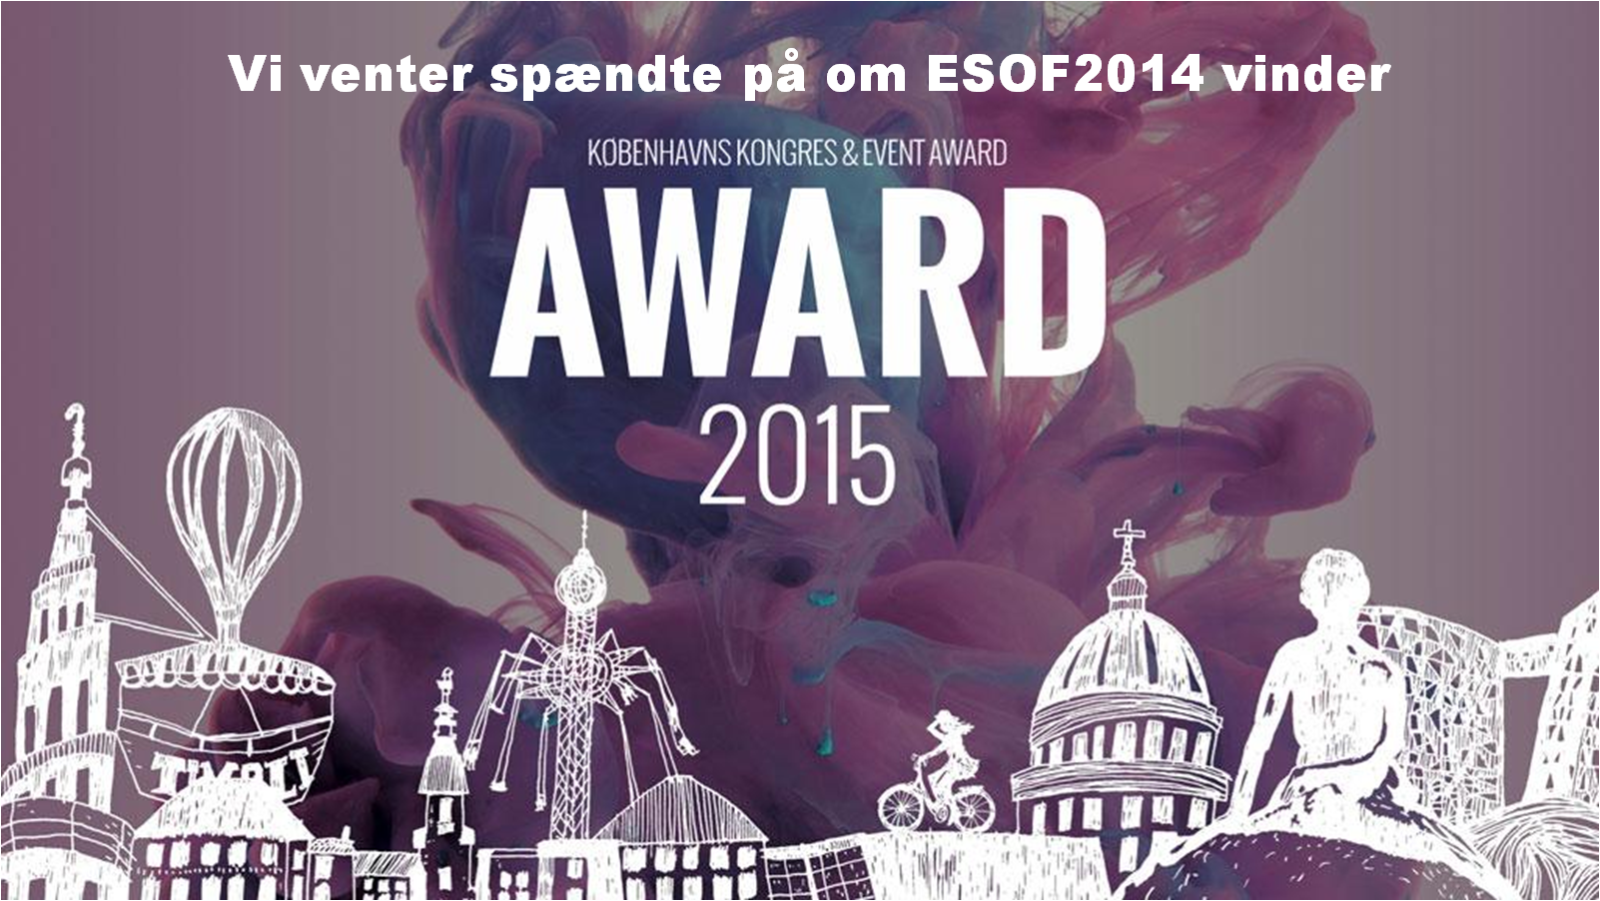 ESOF2014 nominated to CPH Congress & Event Award 2015